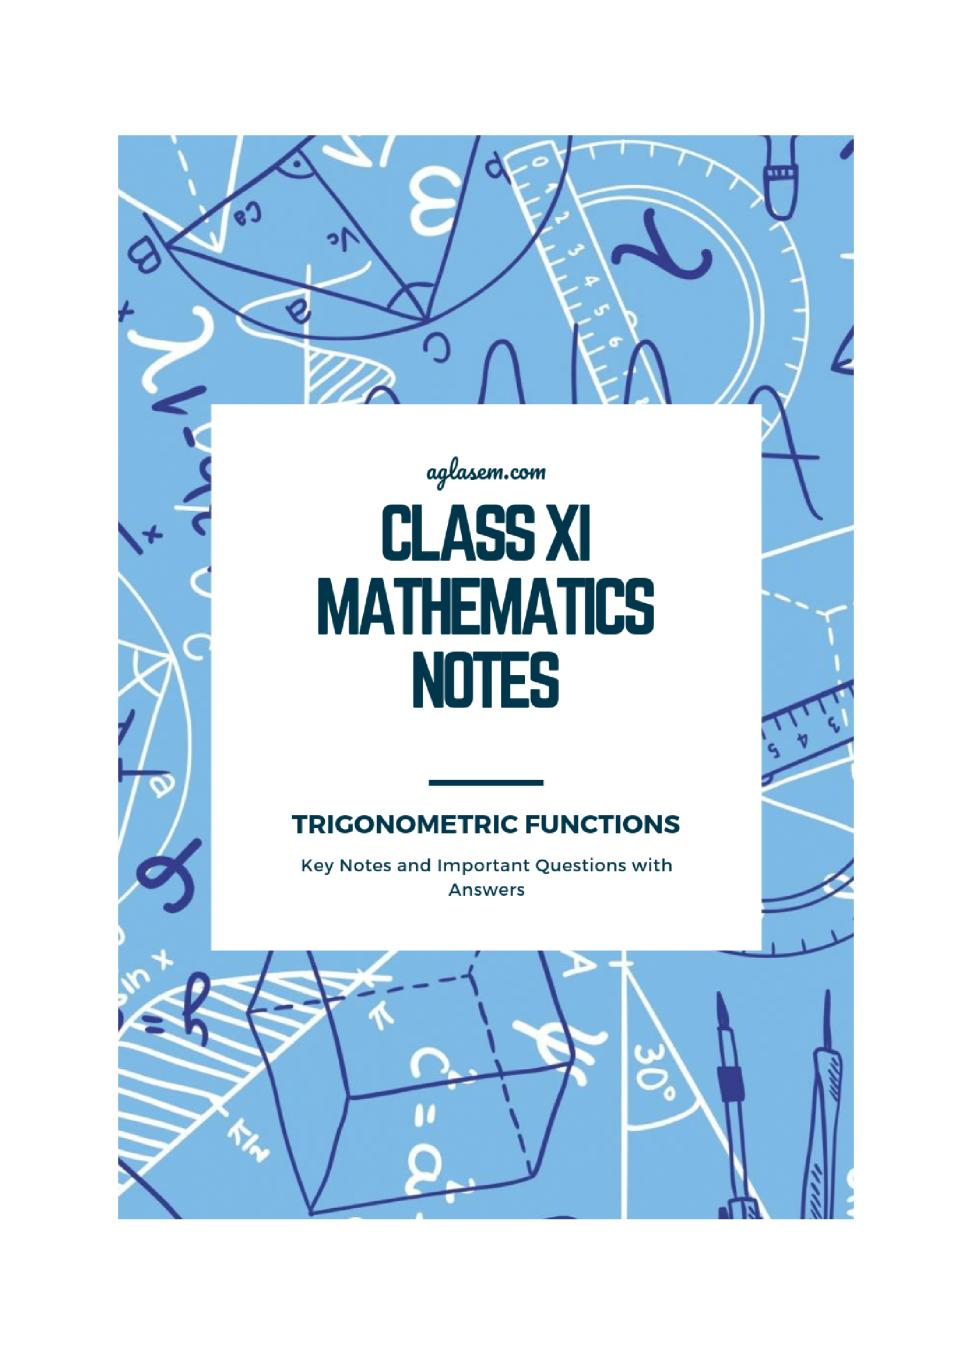 Class 11 Maths Notes for Trigonometric Functions